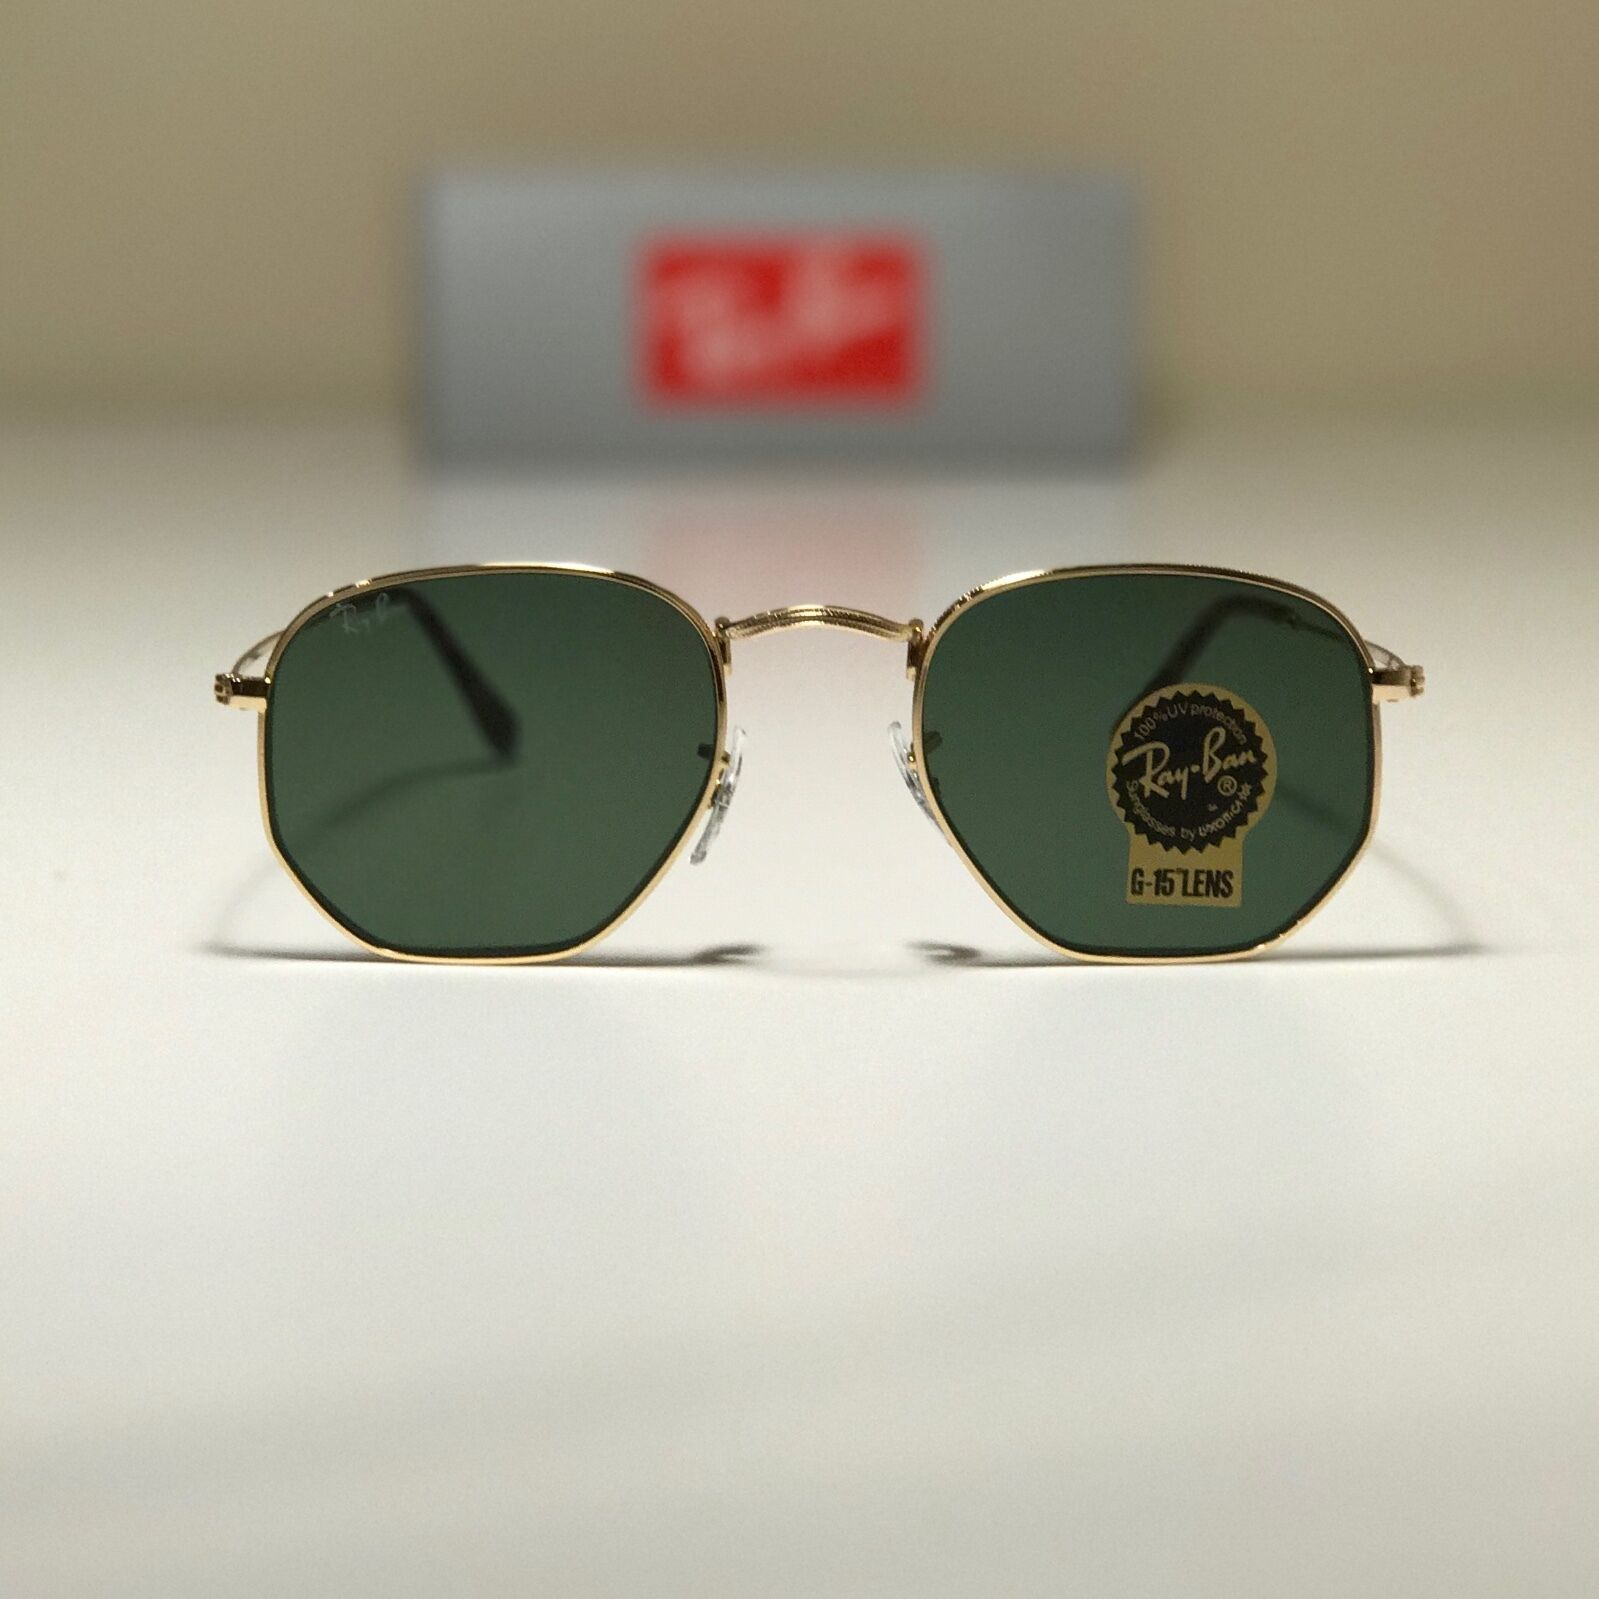 2acca50284 order ean 8053672611649 product image for original ray ban sunglasses  rb3548n gold frame 001 51mm green